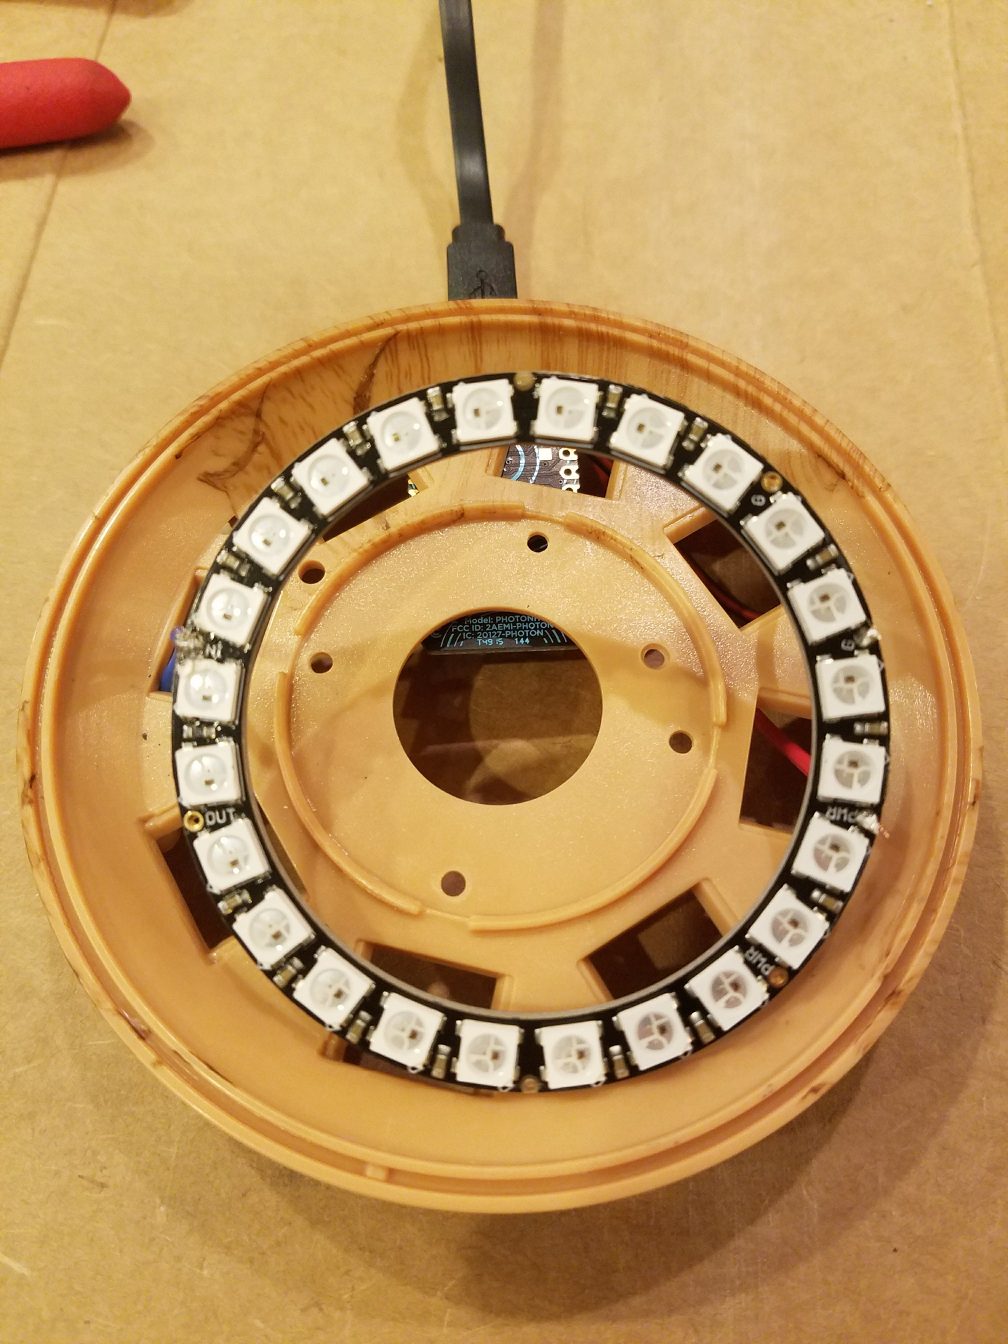 NeoPixel soldered to the Photon